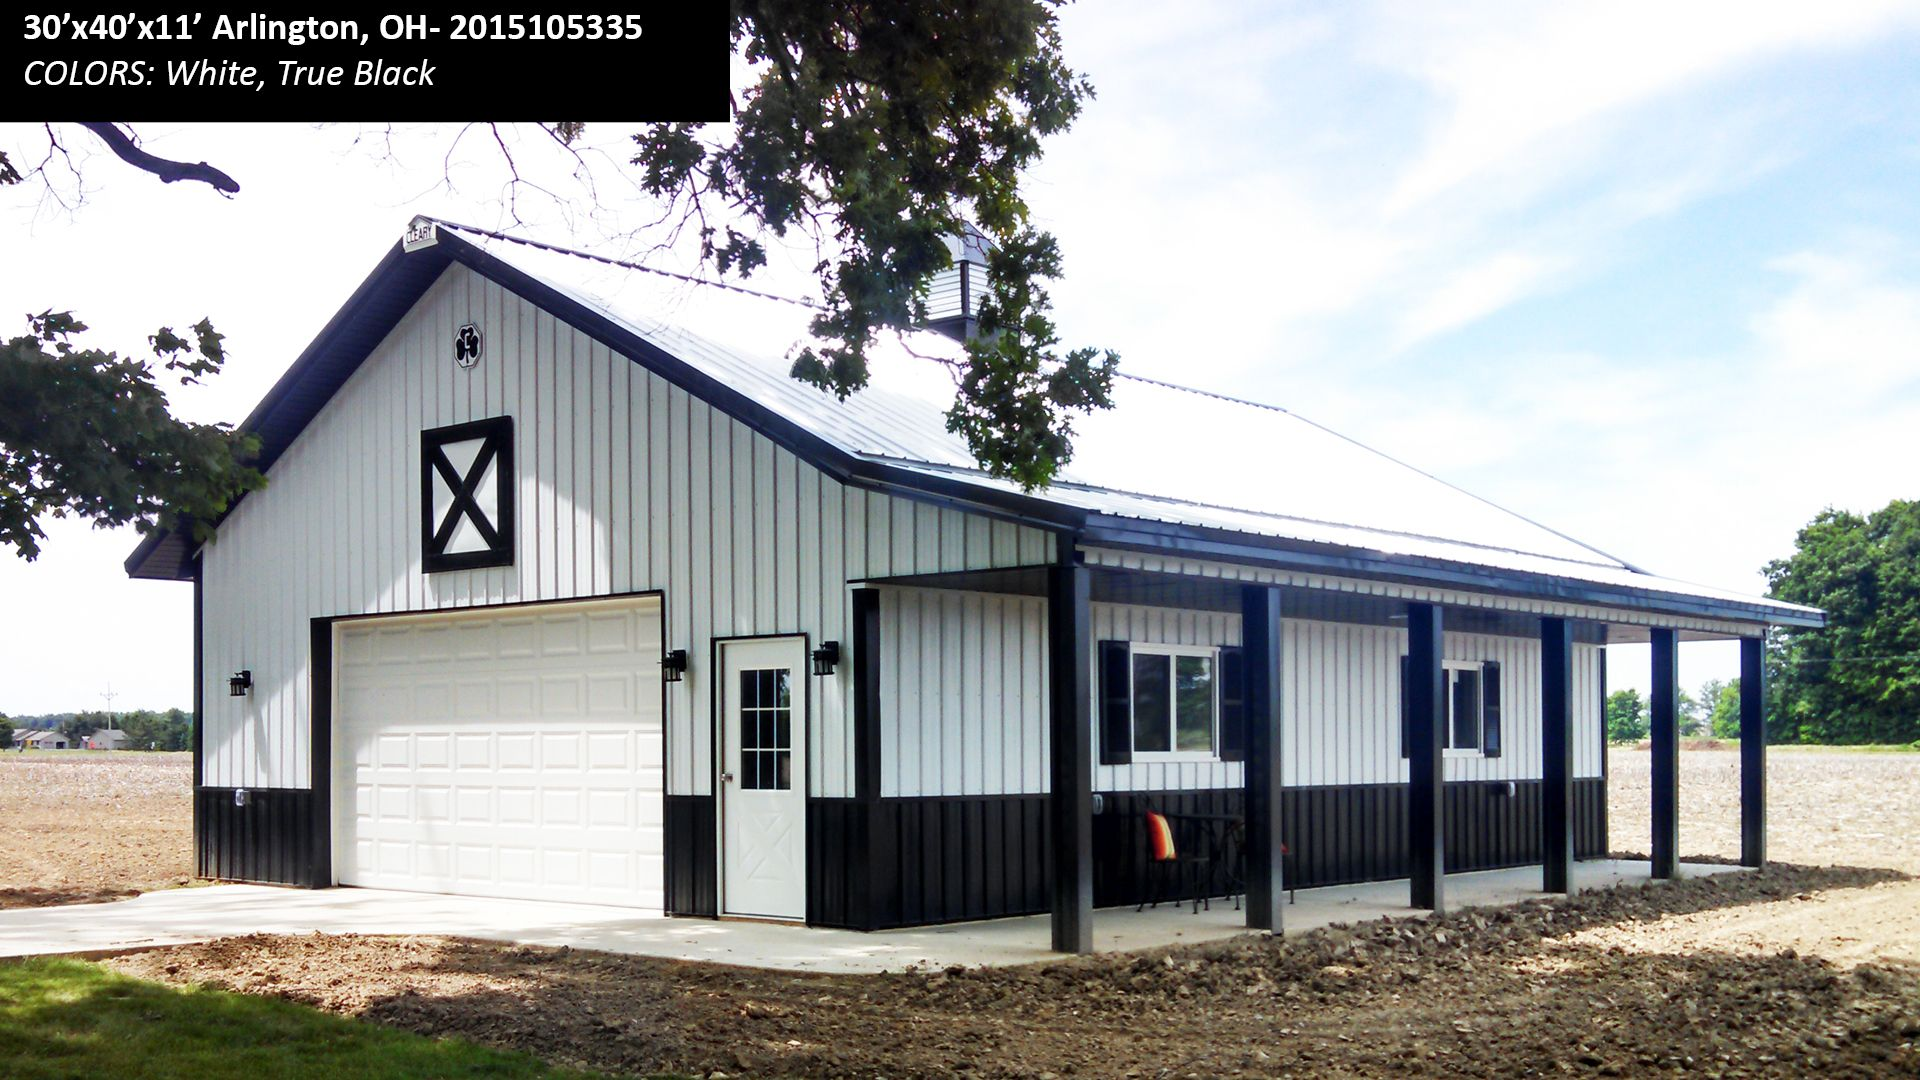 30 X40 X11 Cleary Suburban Building In Arlington Oh Colors White True Black Cleary Buildings Pole Buildings Pole Barn Homes